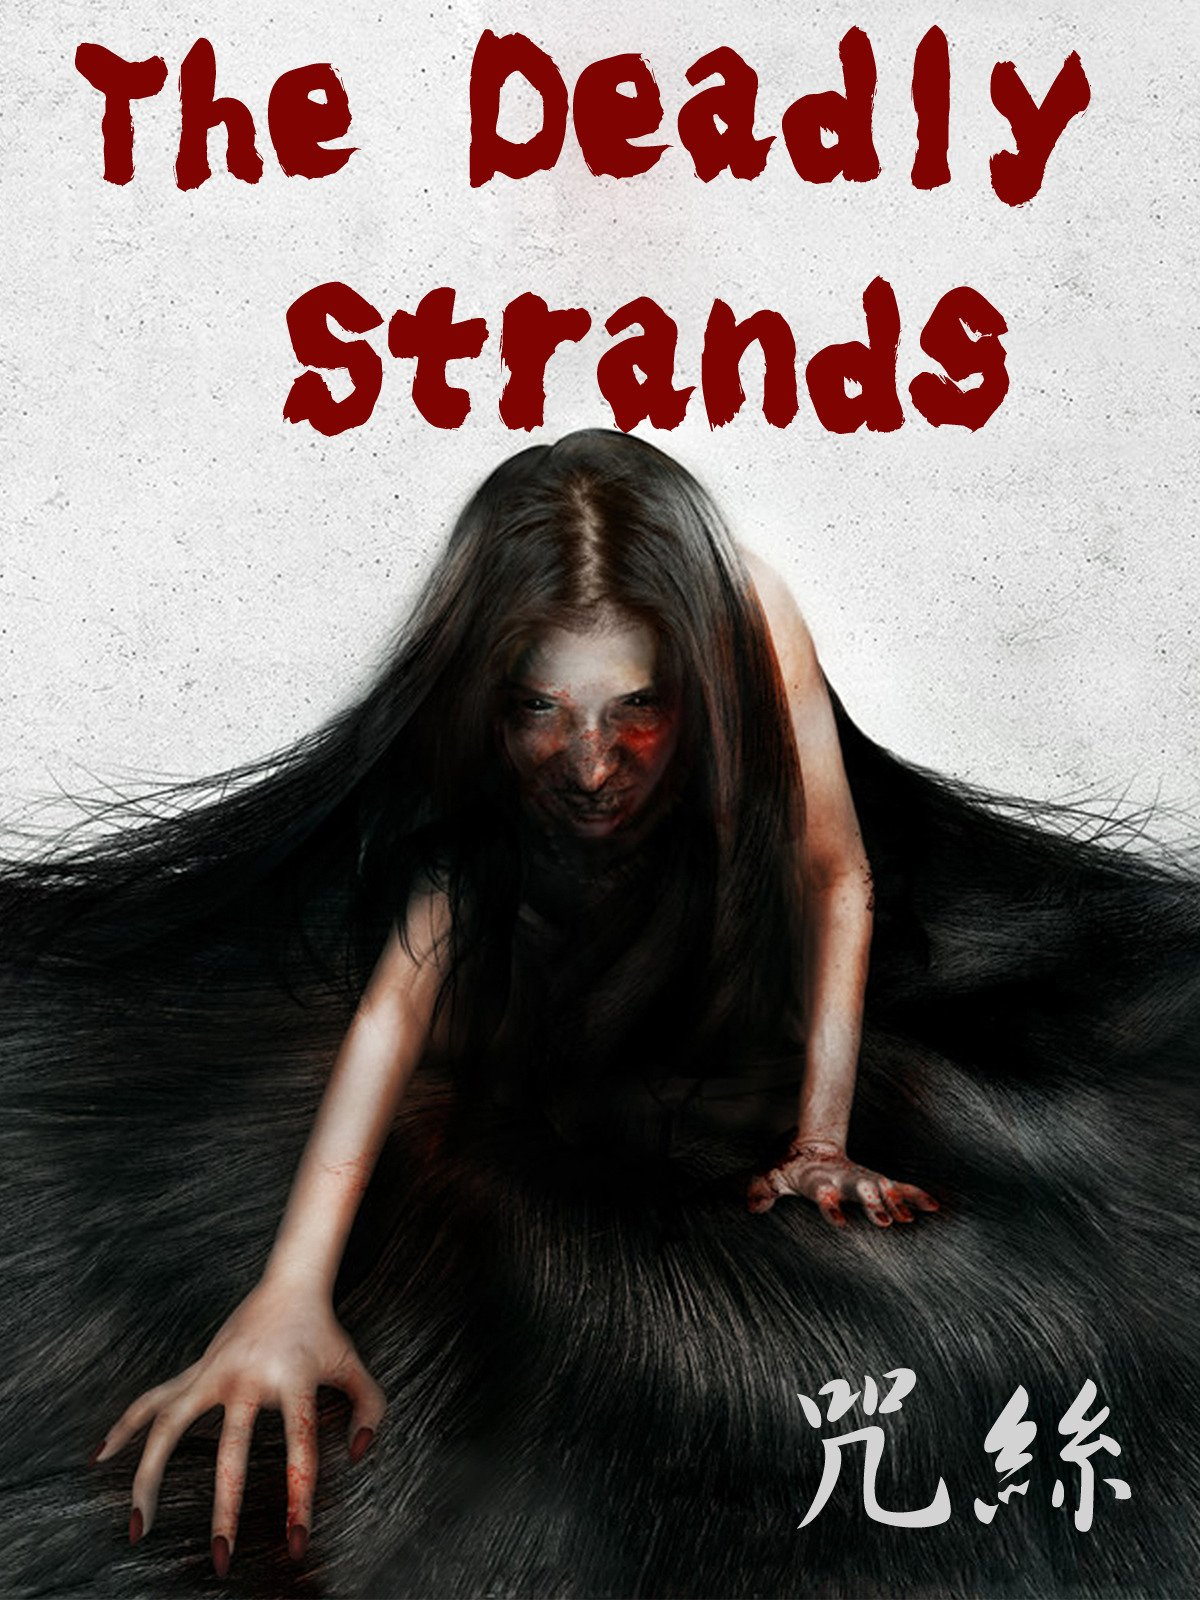 The Deadly Strands